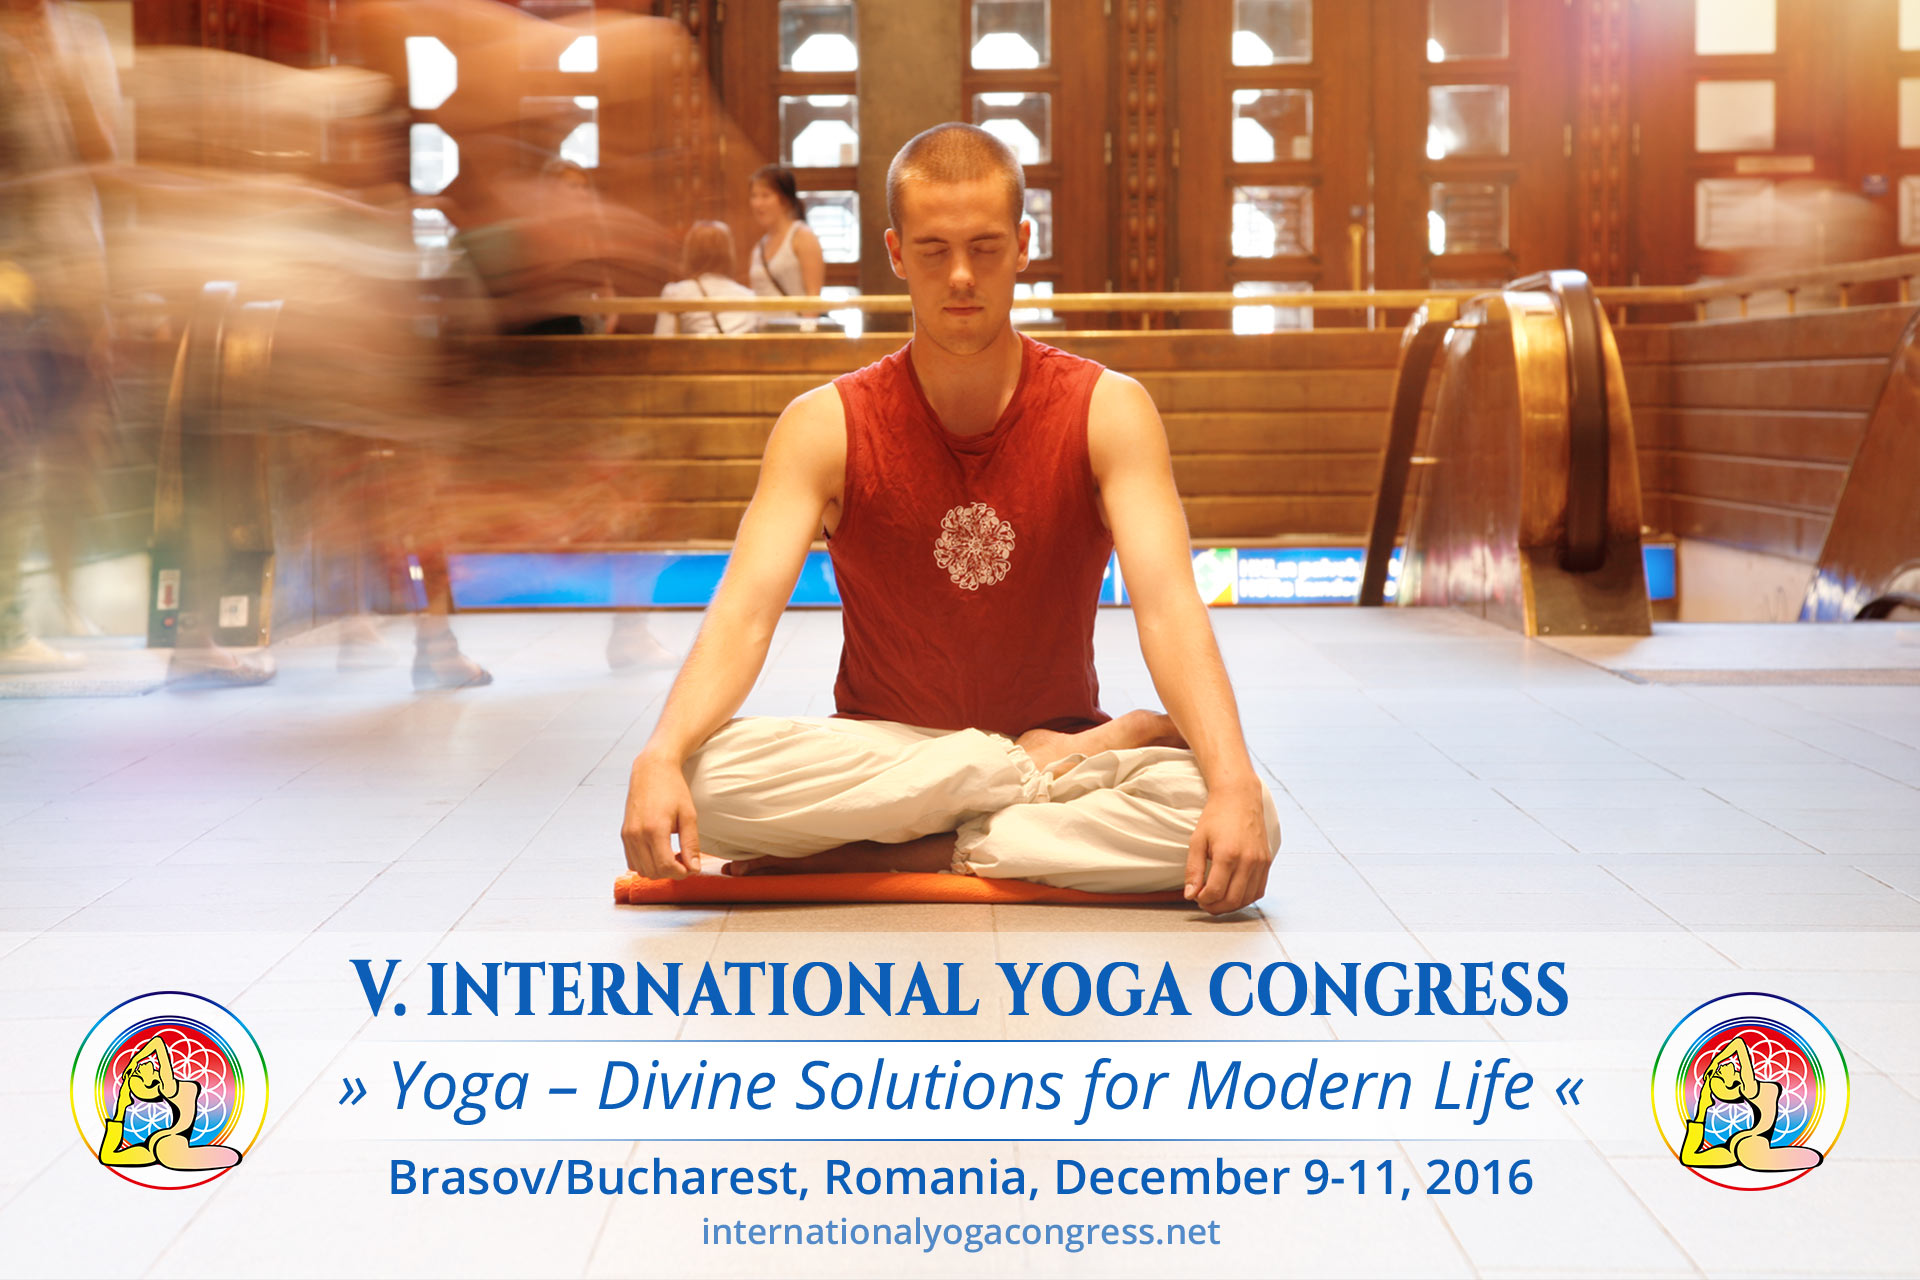 yoga-congress-2016-banner-01